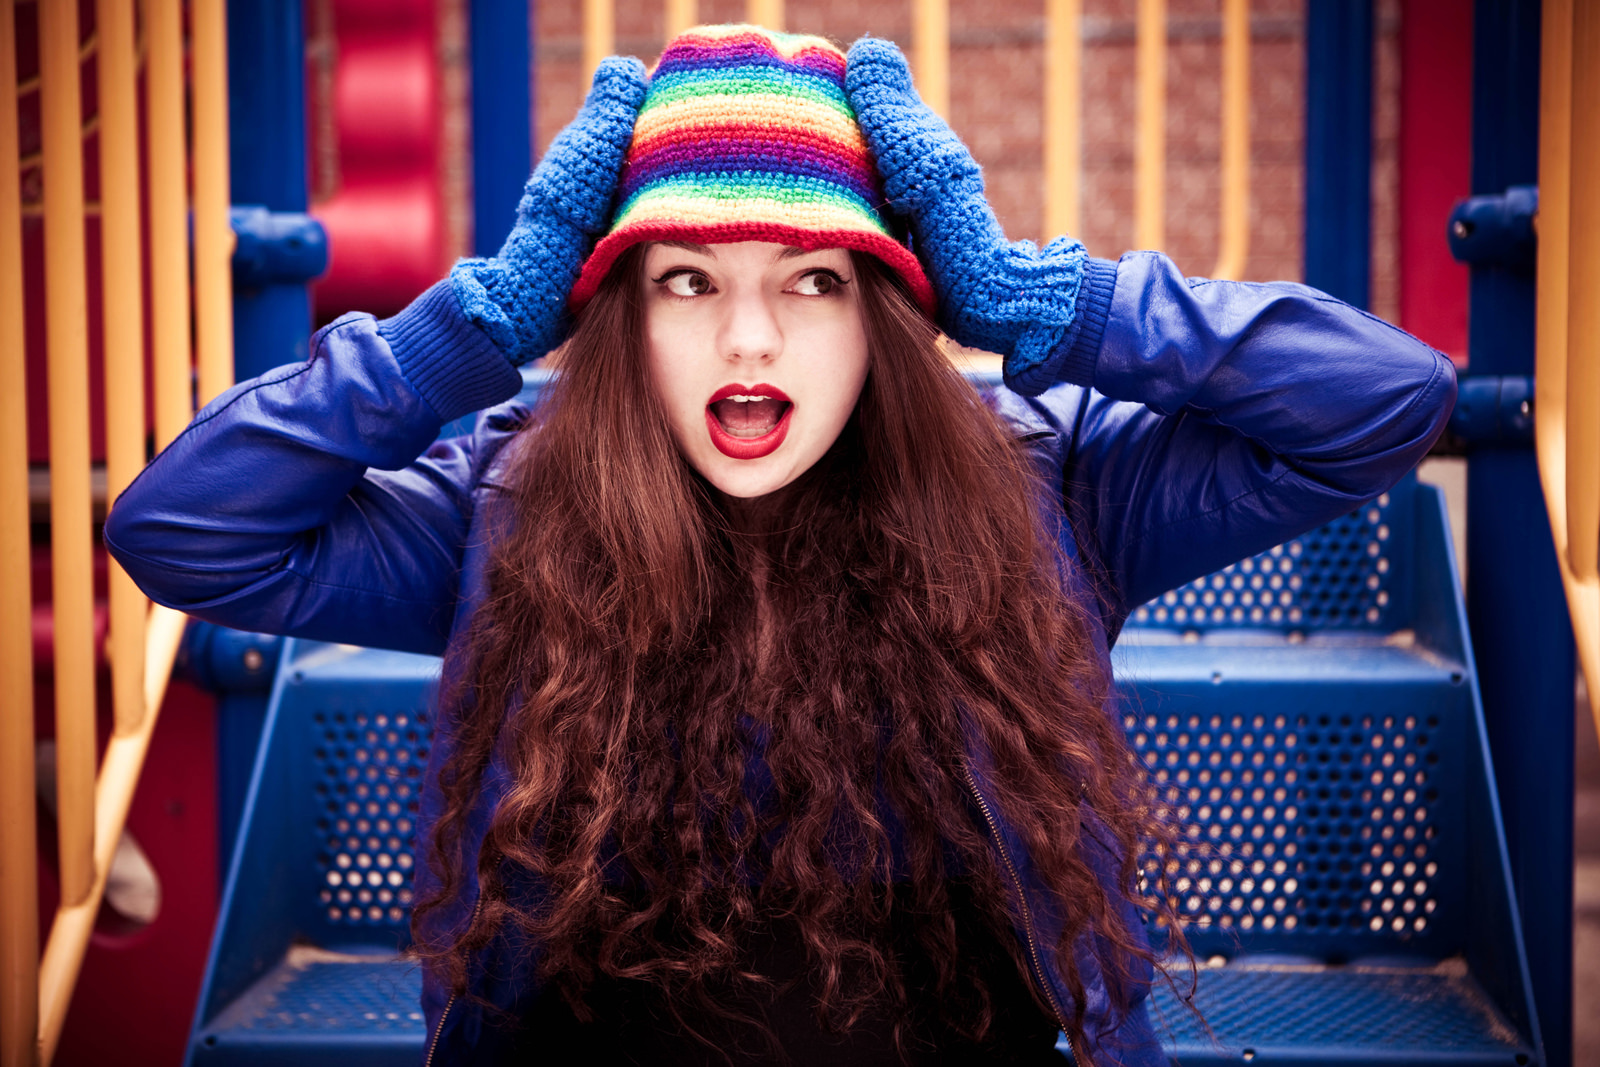 A picture of Kate Sloan, a white woman with long, wavy dark hair. She has her hands on the side of her head and her mouth open in a 'surprised' expression. She is wearing a blue jacket, blue gloves and a rainbow striped knitted hat.